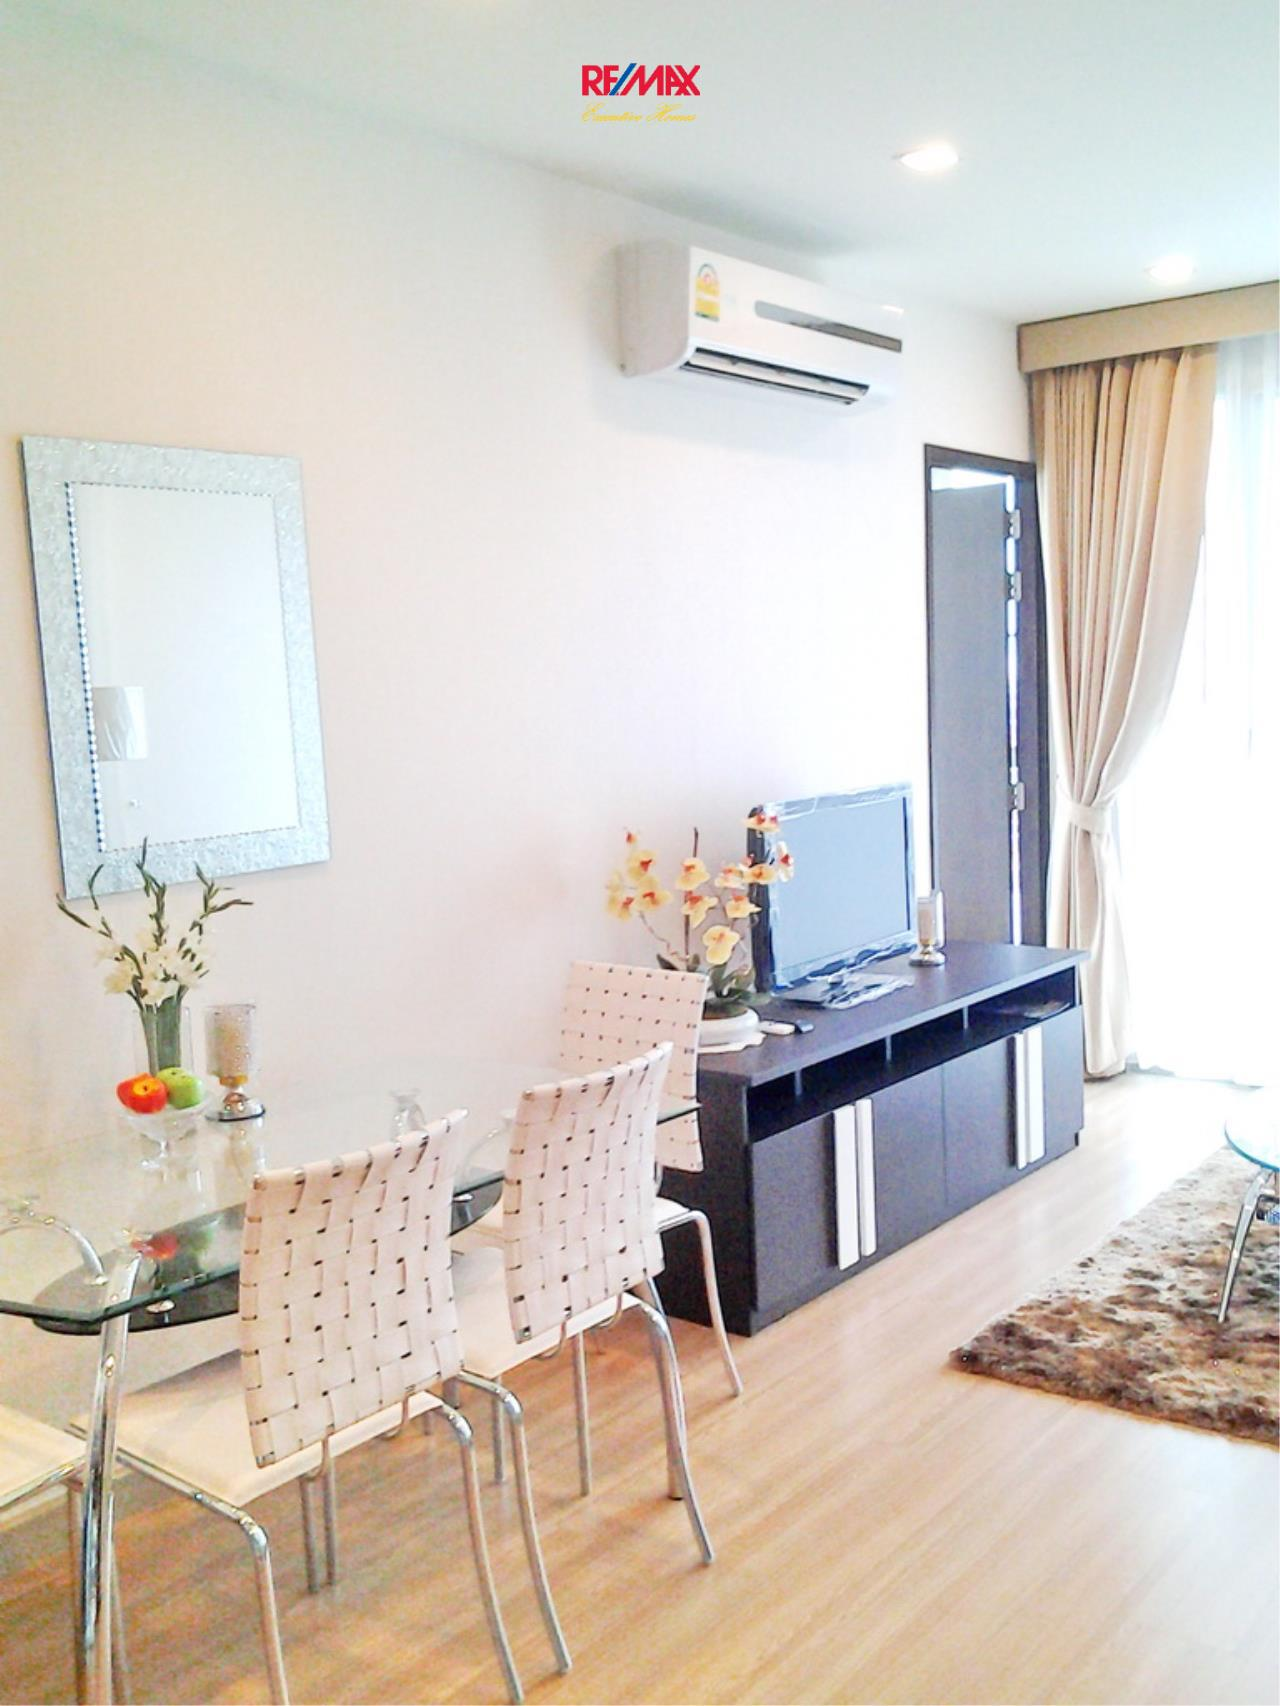 RE/MAX Executive Homes Agency's Lovely 1 Bedroom for Rent Sky Walk Condo 2